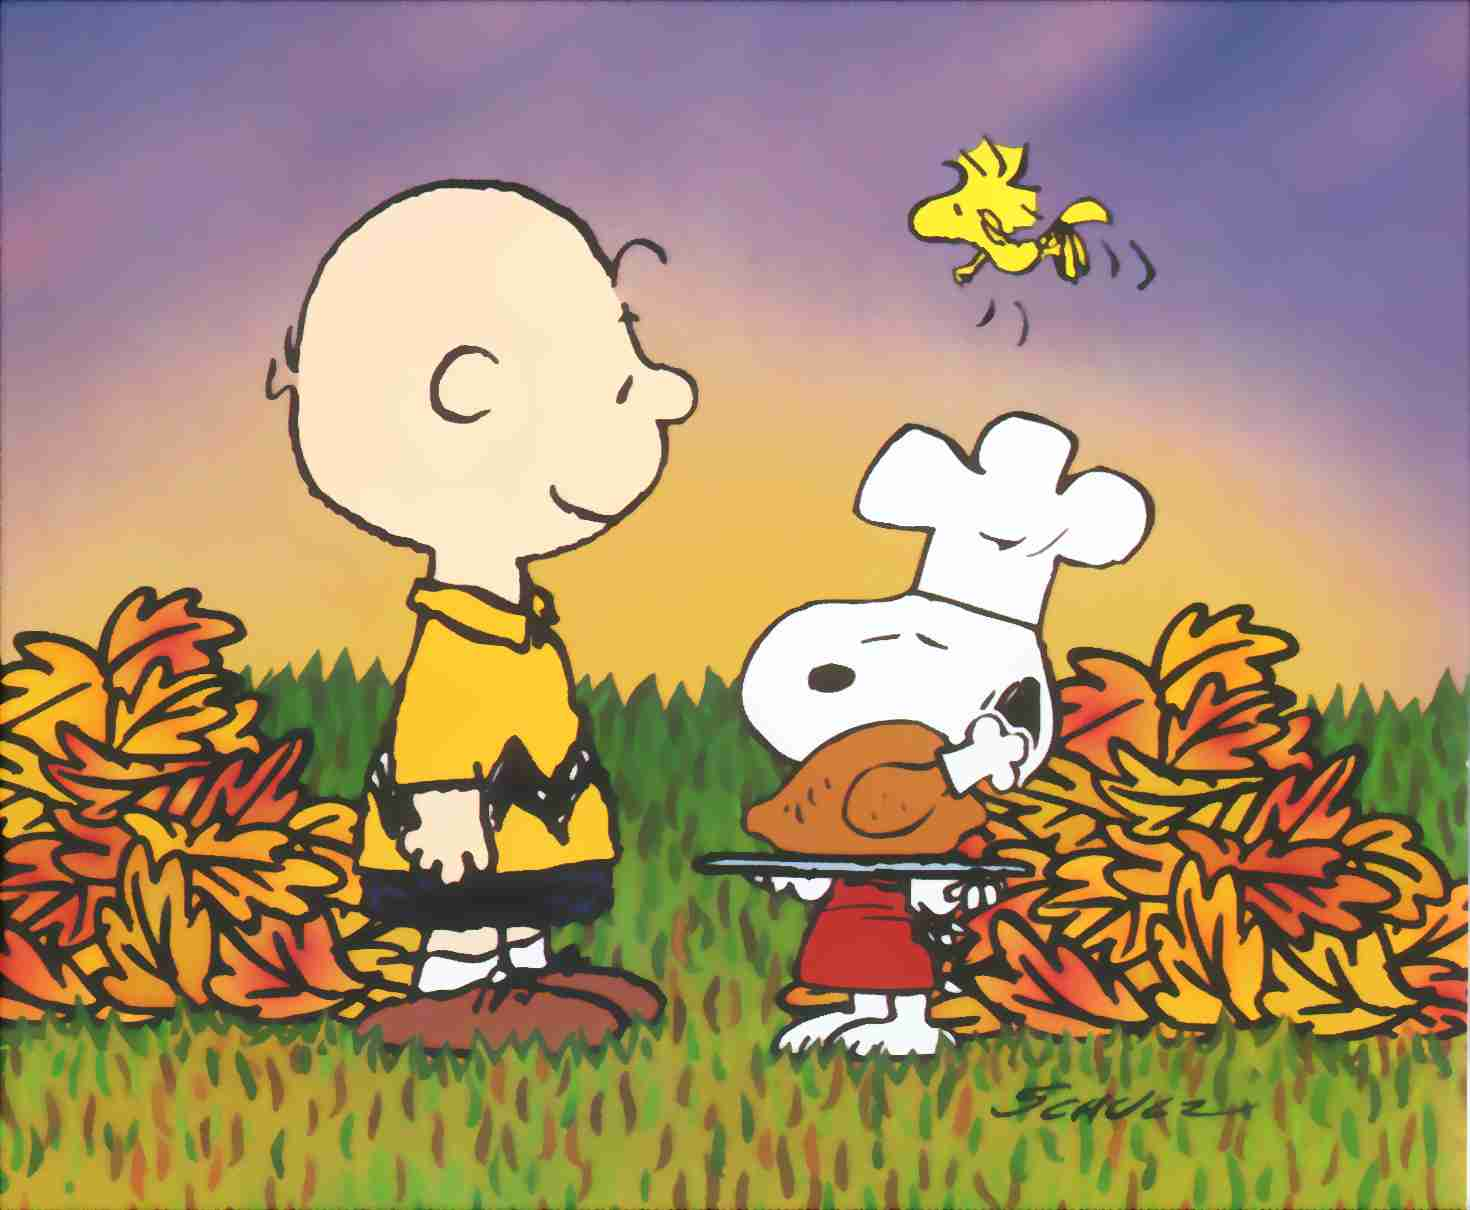 Charlie Brown Wallpaper and Screensaver http://www.screensavers-free.co.uk/wallpapers/thanksgiving-wallpapers.php